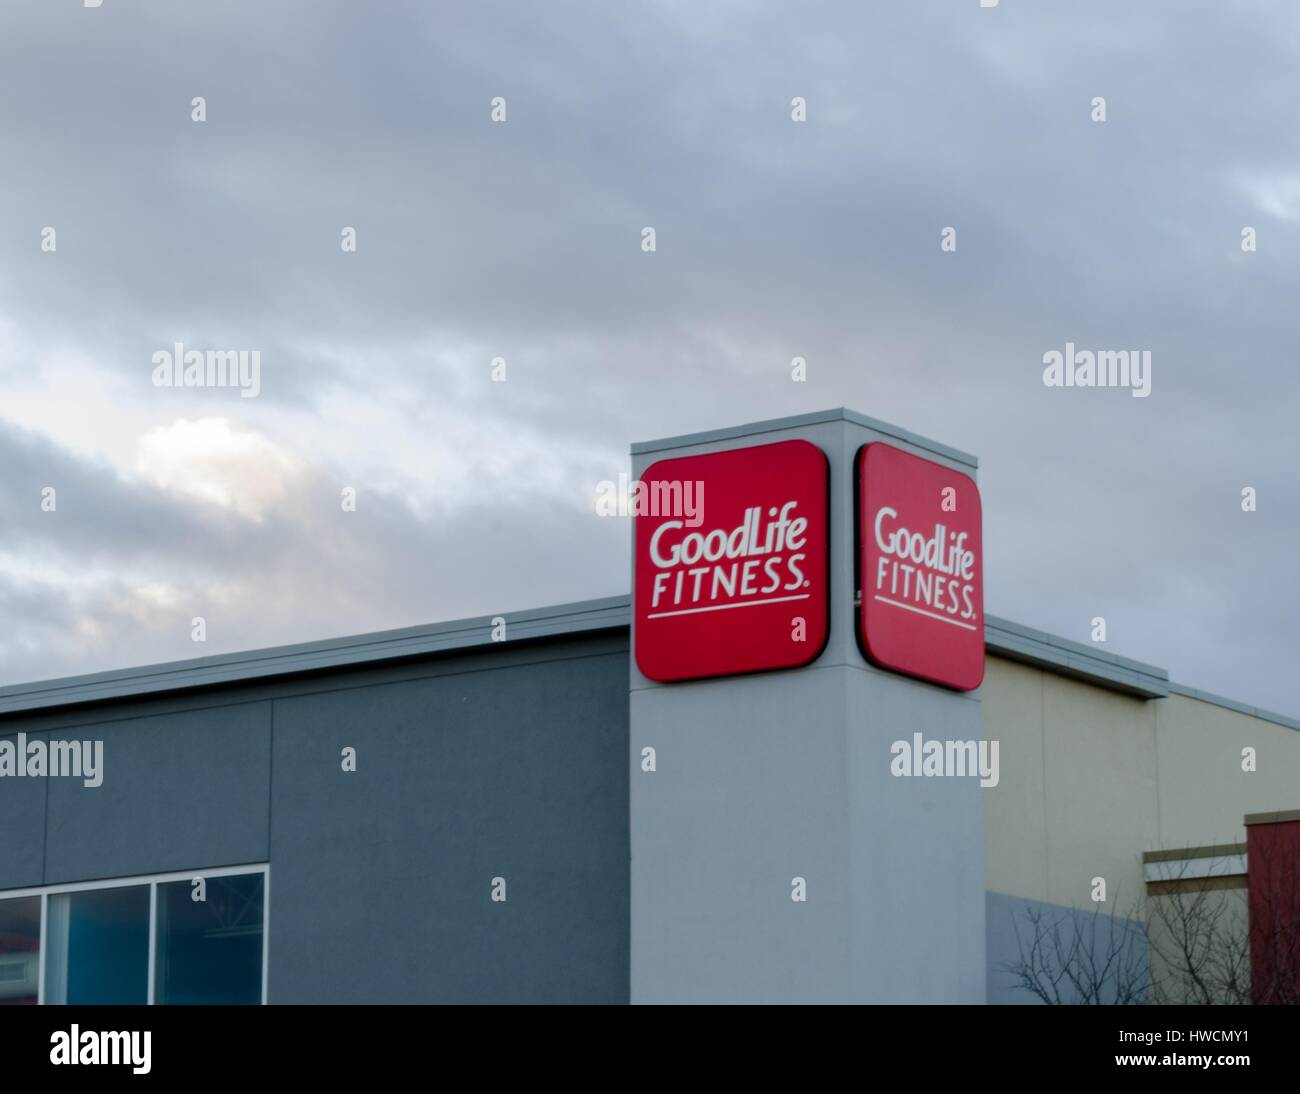 The Goodlife Fitness Logo On A Retail Store In Calgary Alberta